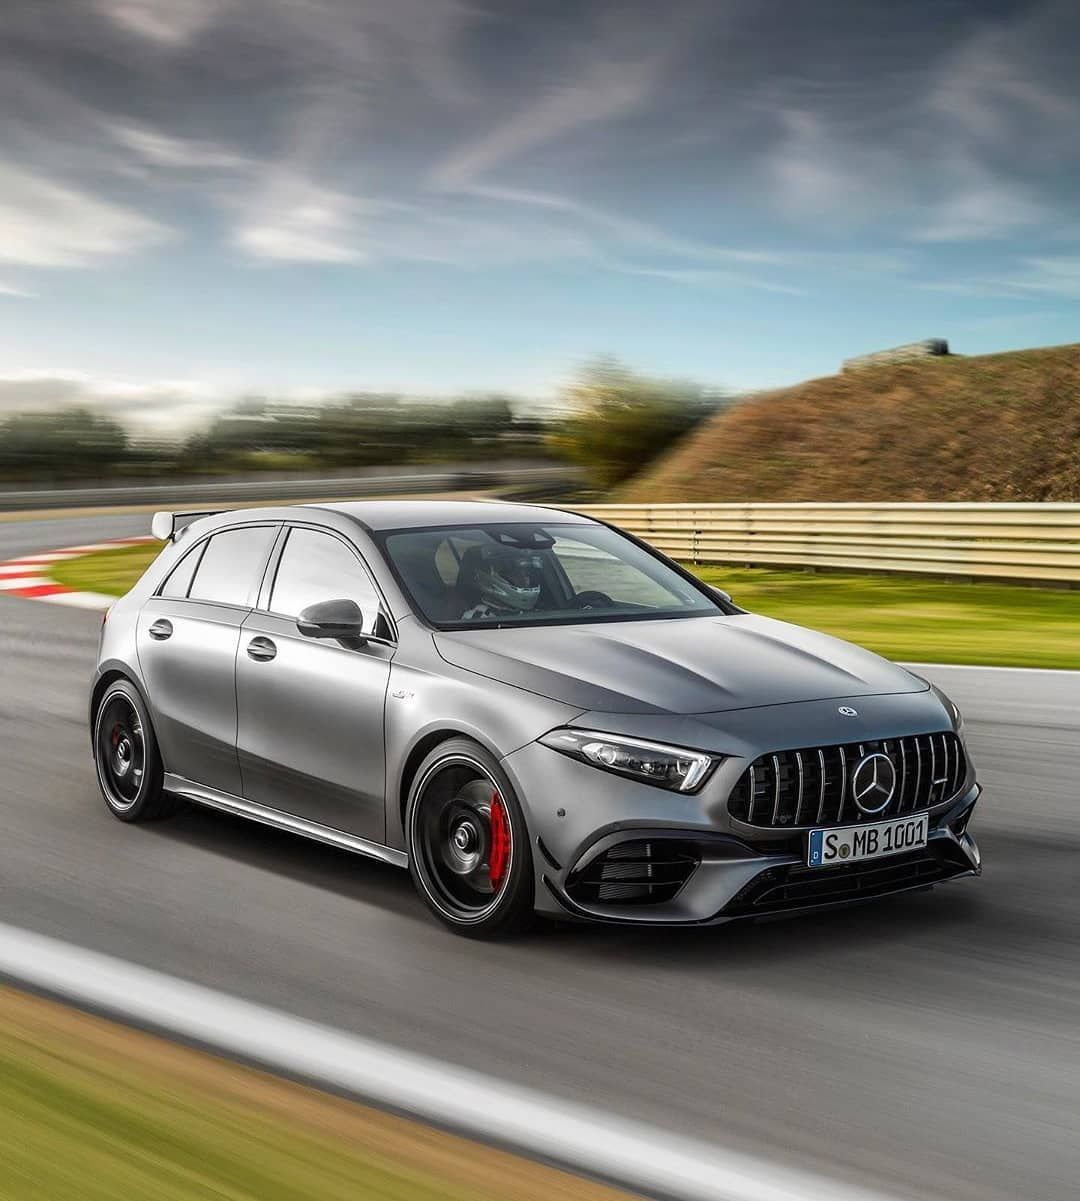 The Mercedes A45 Amg S Makes Use Of The World S Most Powerful 4 Cylinder Engine And A Drift Mode To Make It A Fun Mercedes A45 Amg A45 Amg Dream Cars Mercedes